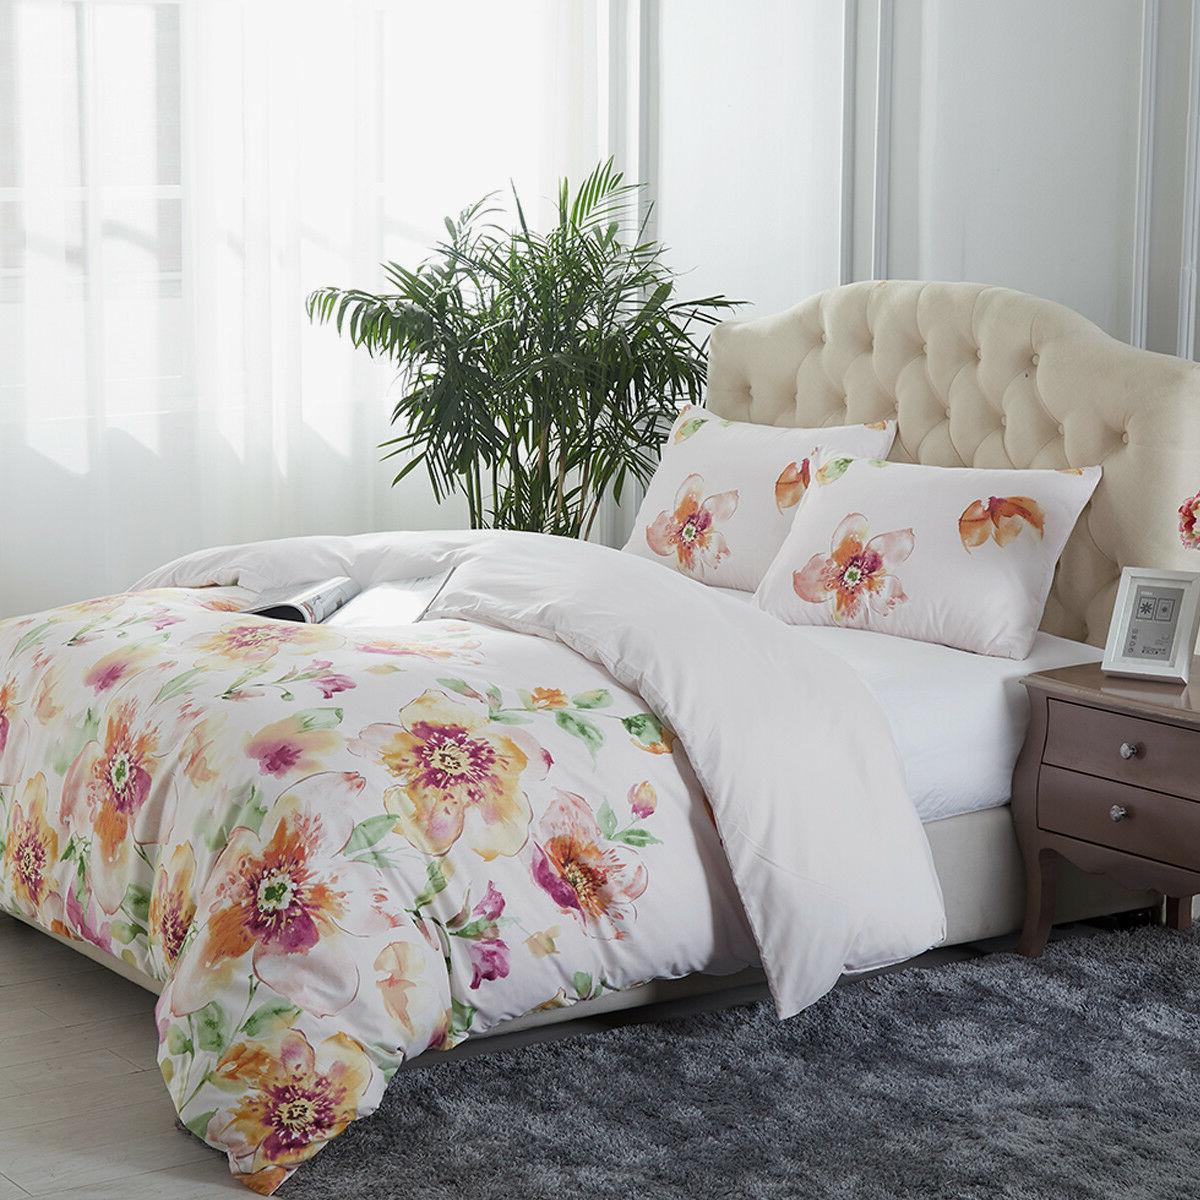 3 Printed Cover Comforter Cover Set Queen/King